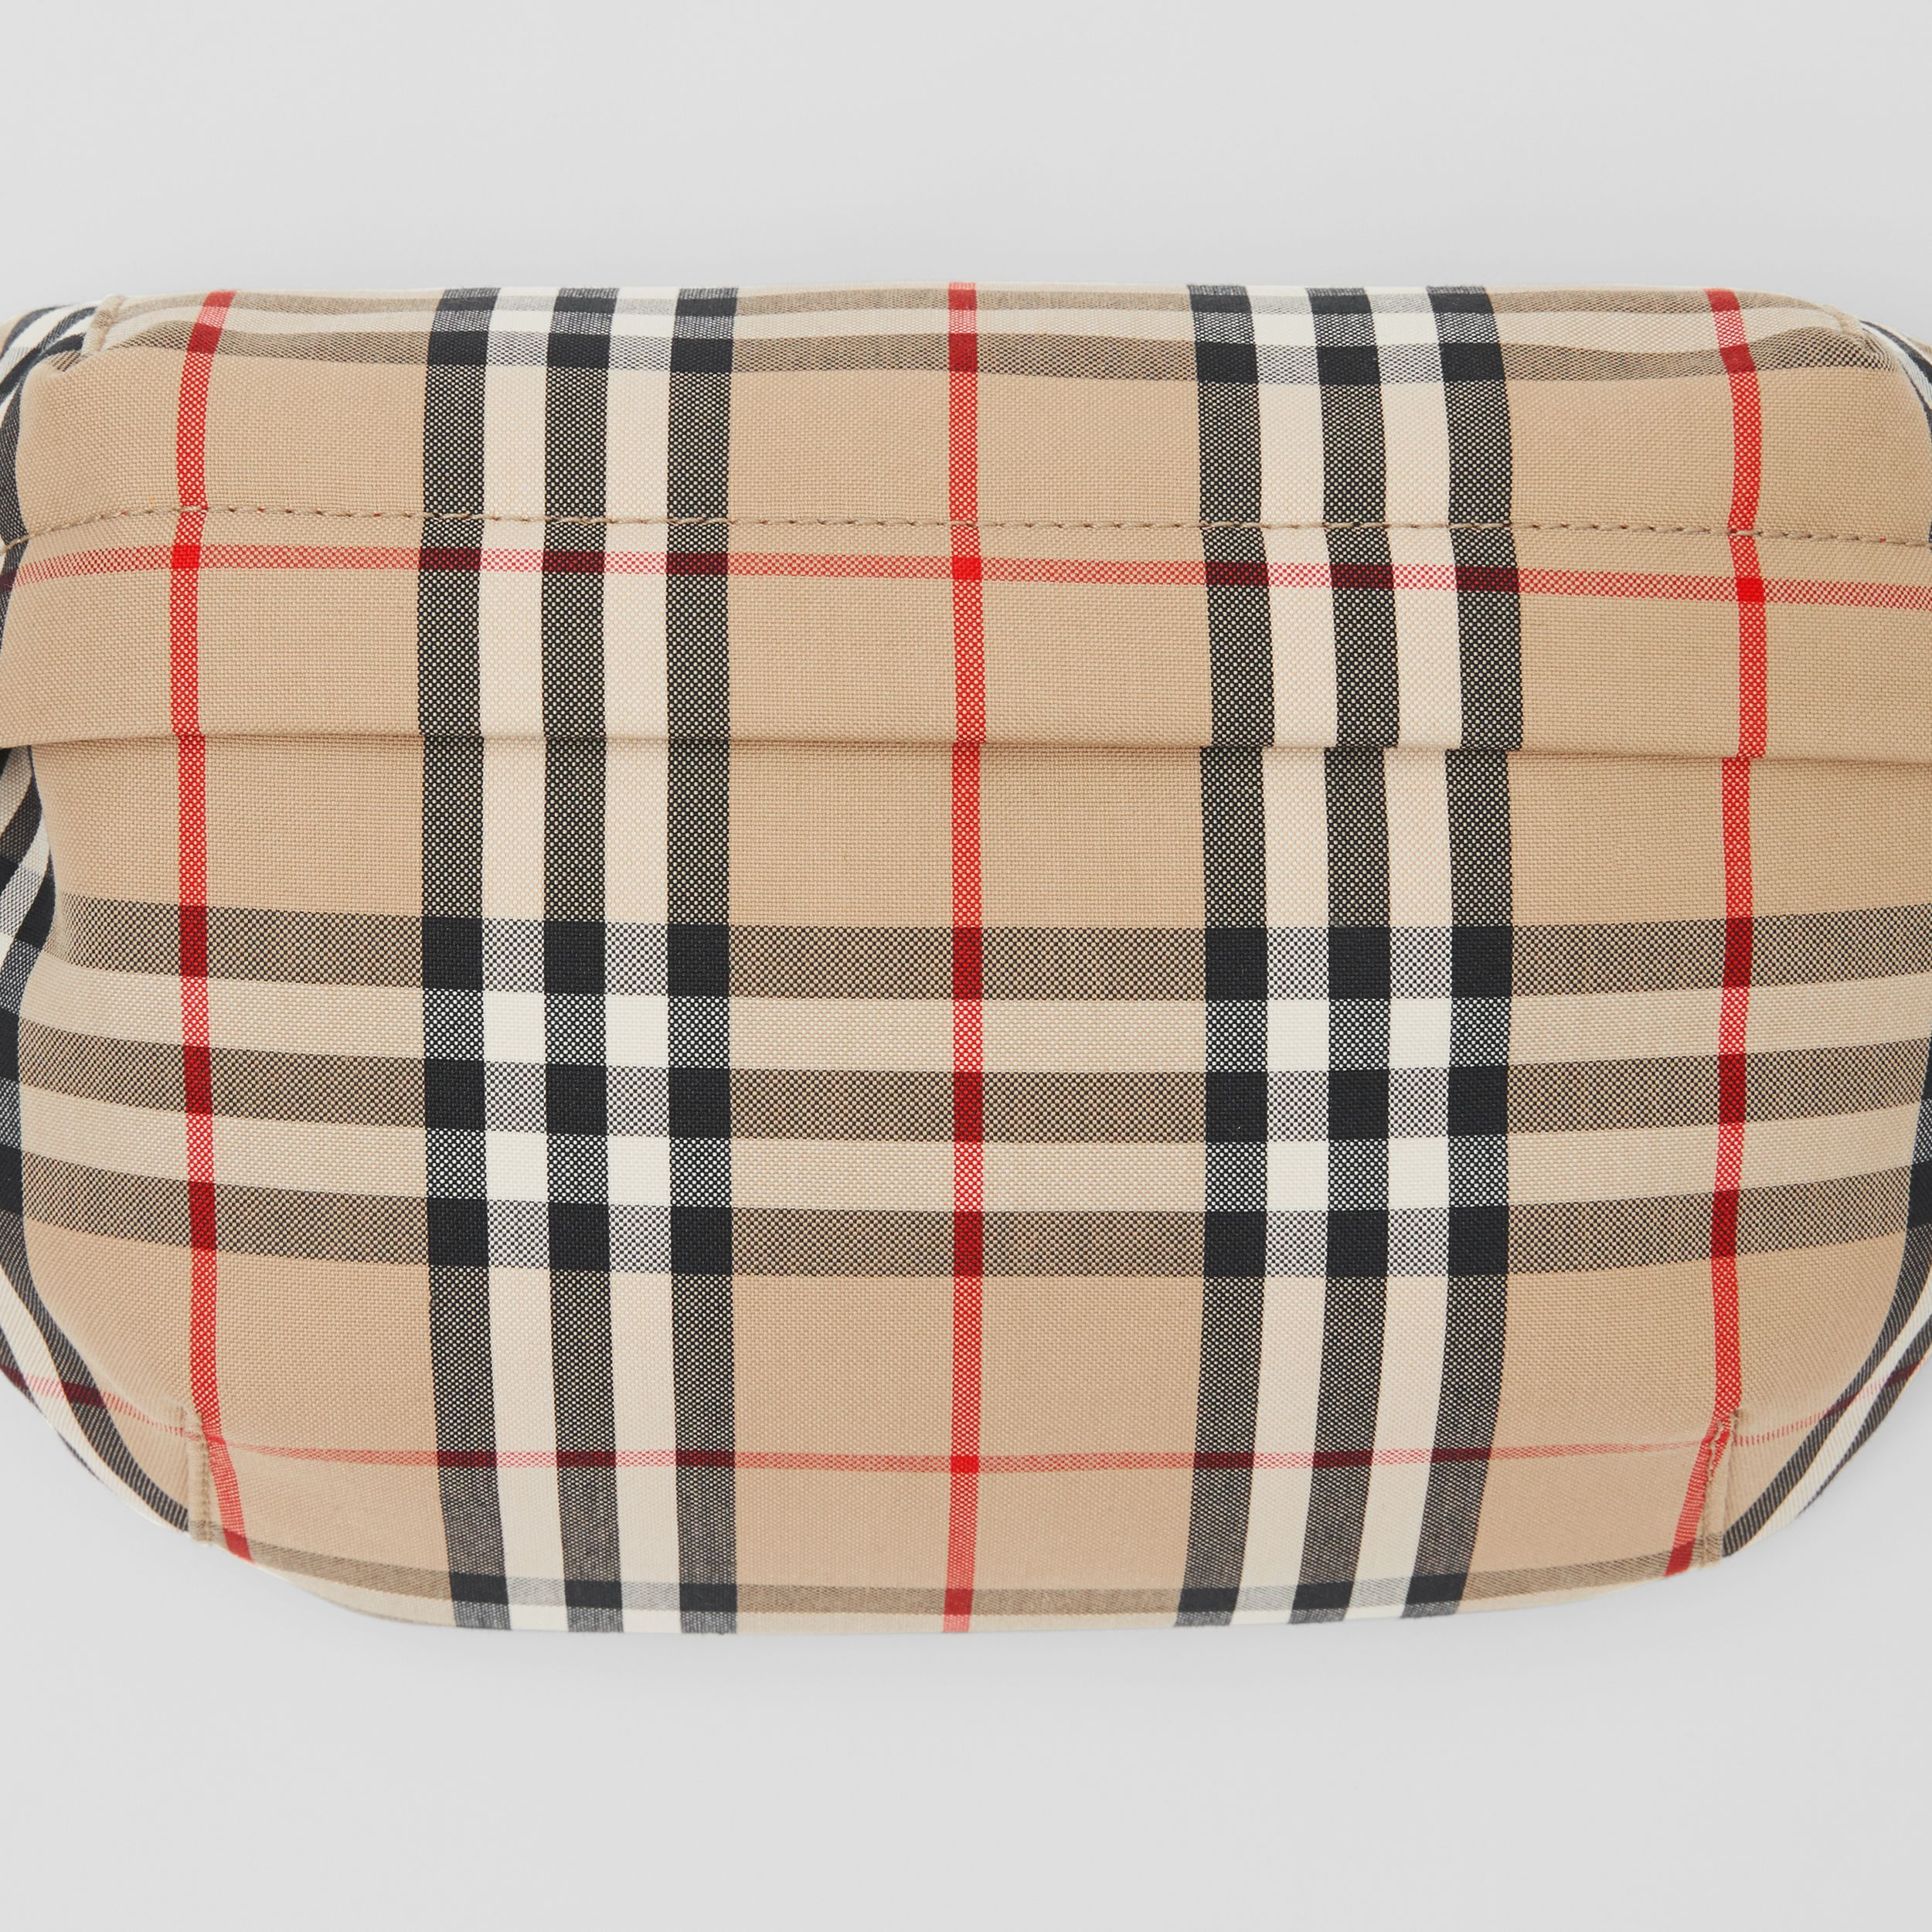 Medium Vintage Check Bonded Cotton Bum Bag in Archive Beige | Burberry United Kingdom - 2